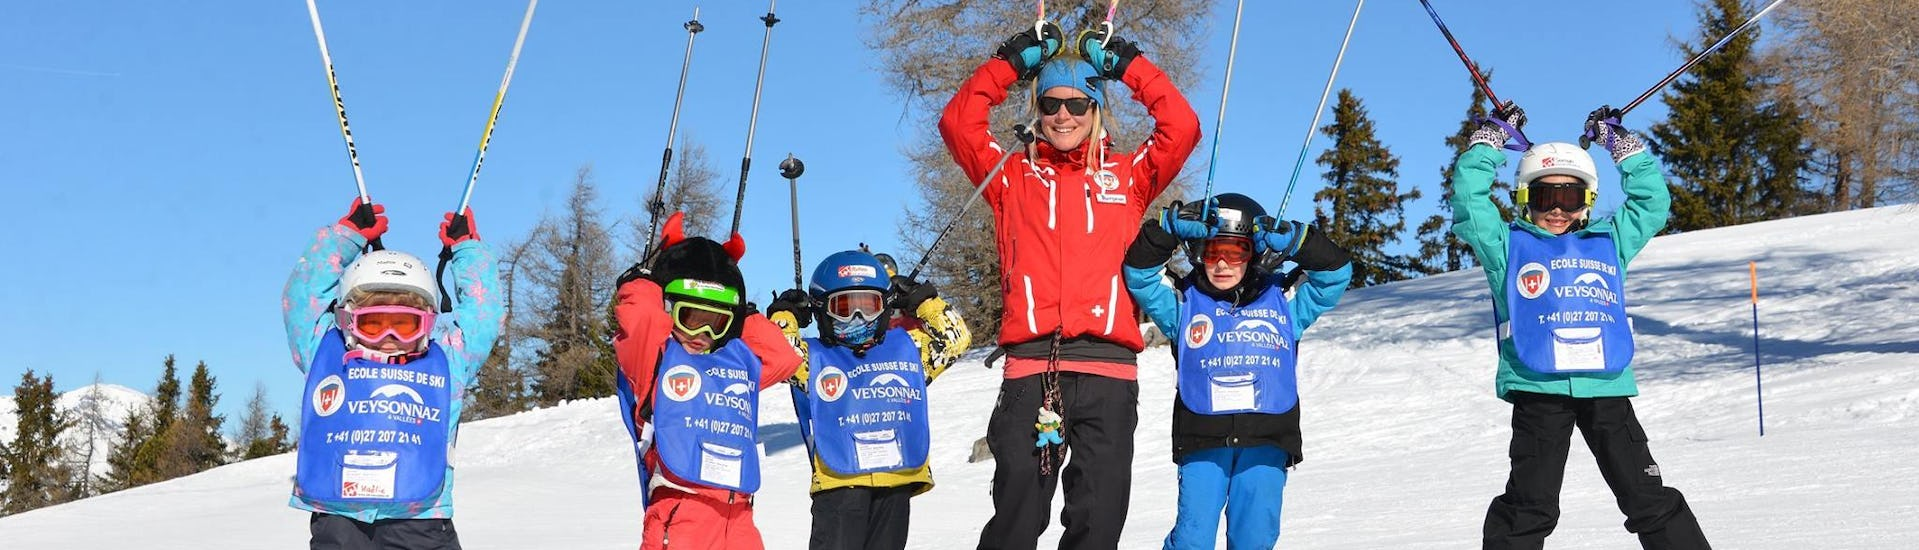 Ski Lessons for Kids (6-12 years) - Full Day - Advanced